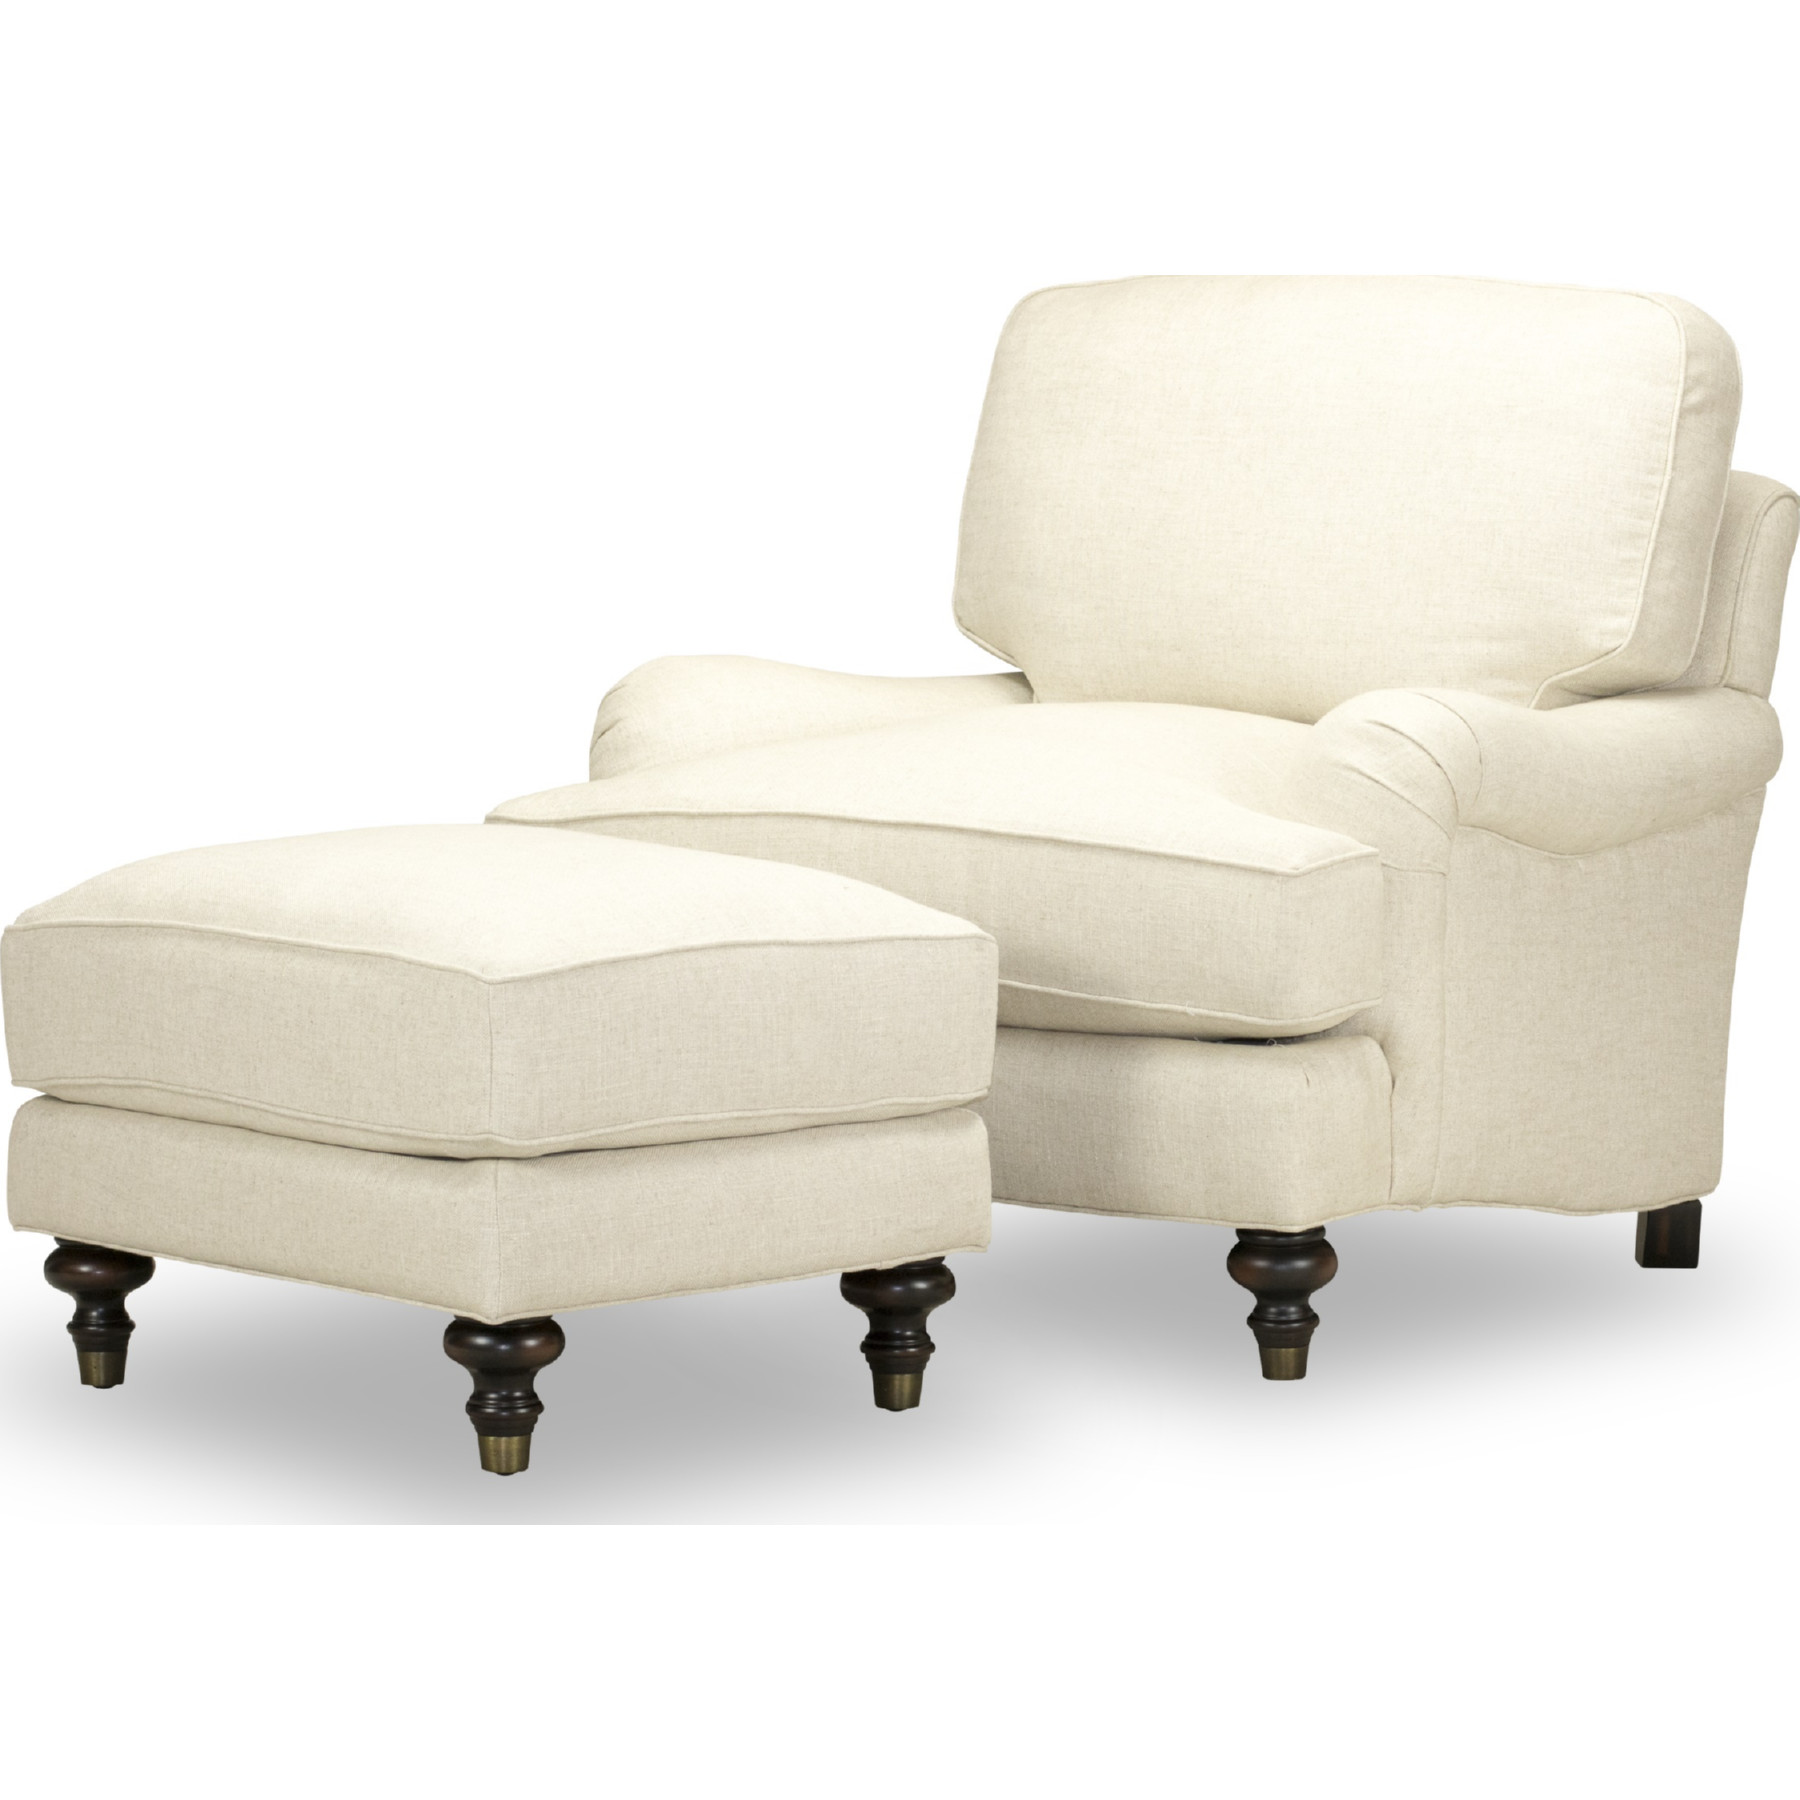 Magnificent Sloane Ottoman In Tribeca Natural Fabric By Spectra Home Furnishings Pdpeps Interior Chair Design Pdpepsorg